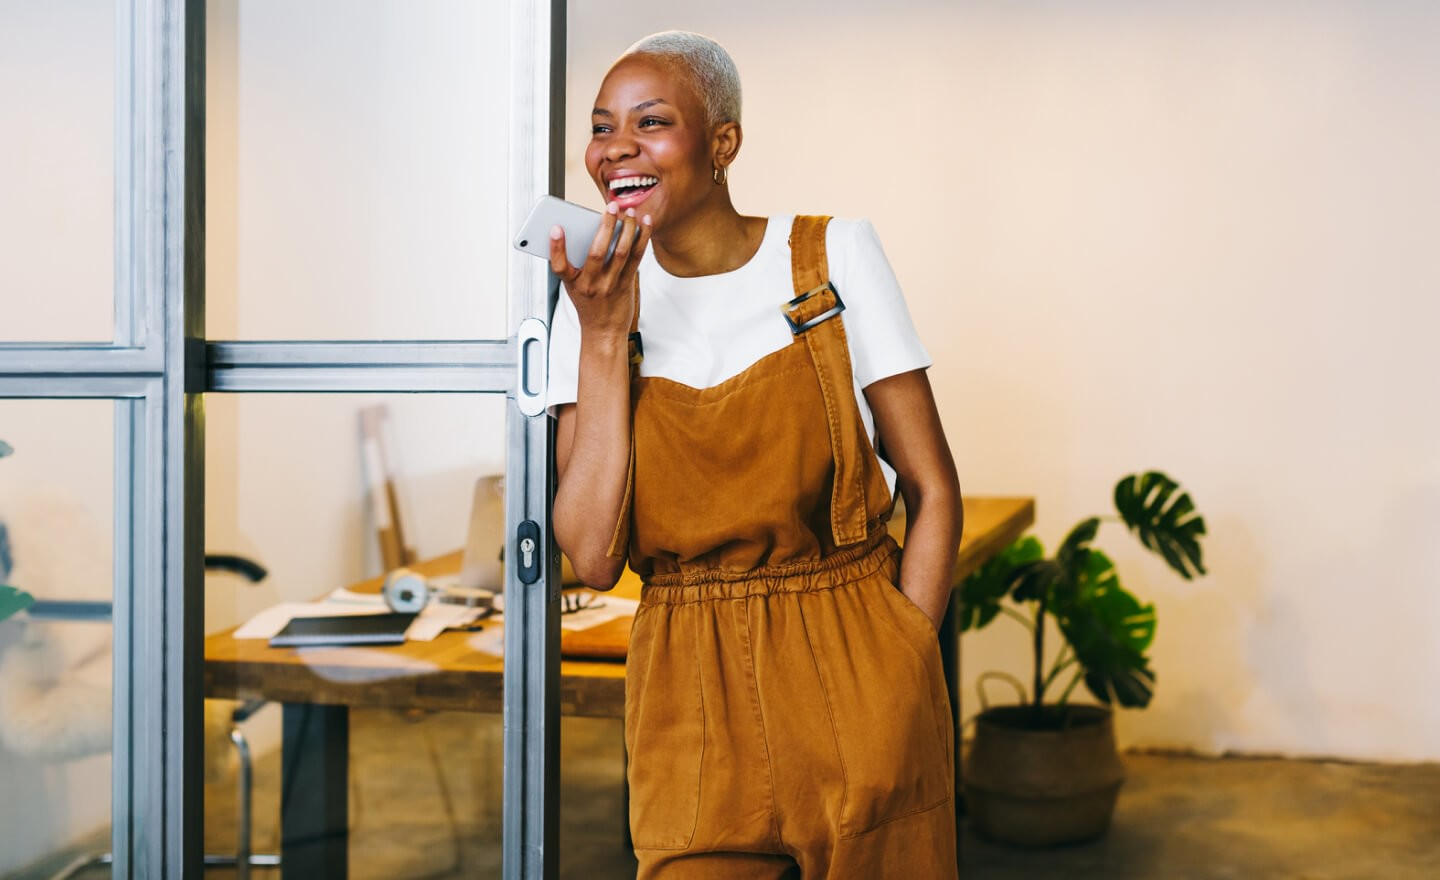 Black woman using a mobile phone